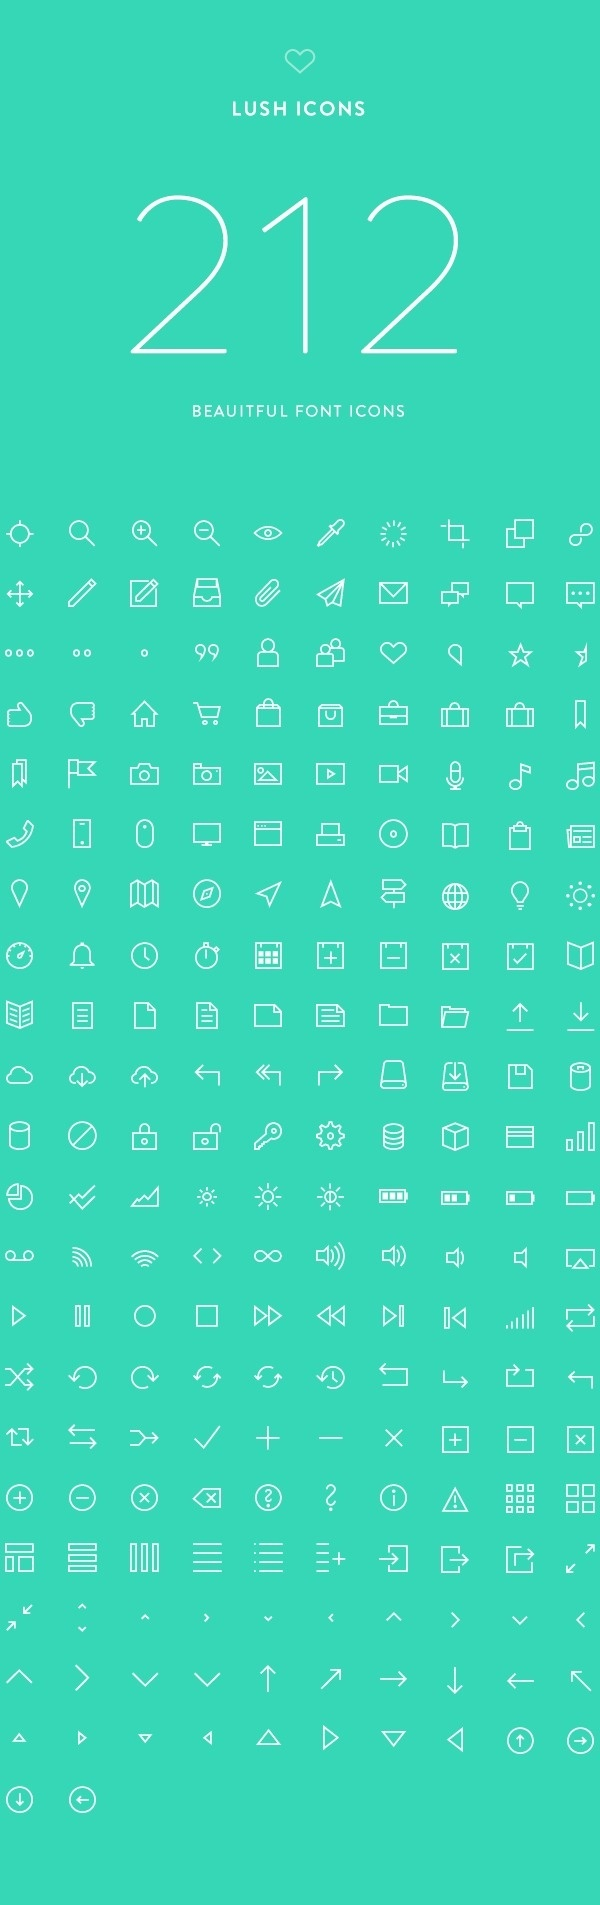 Lush Icons: 212 Beautiful Font Icons on Behance #modern #ux #icons #clean #ui #web